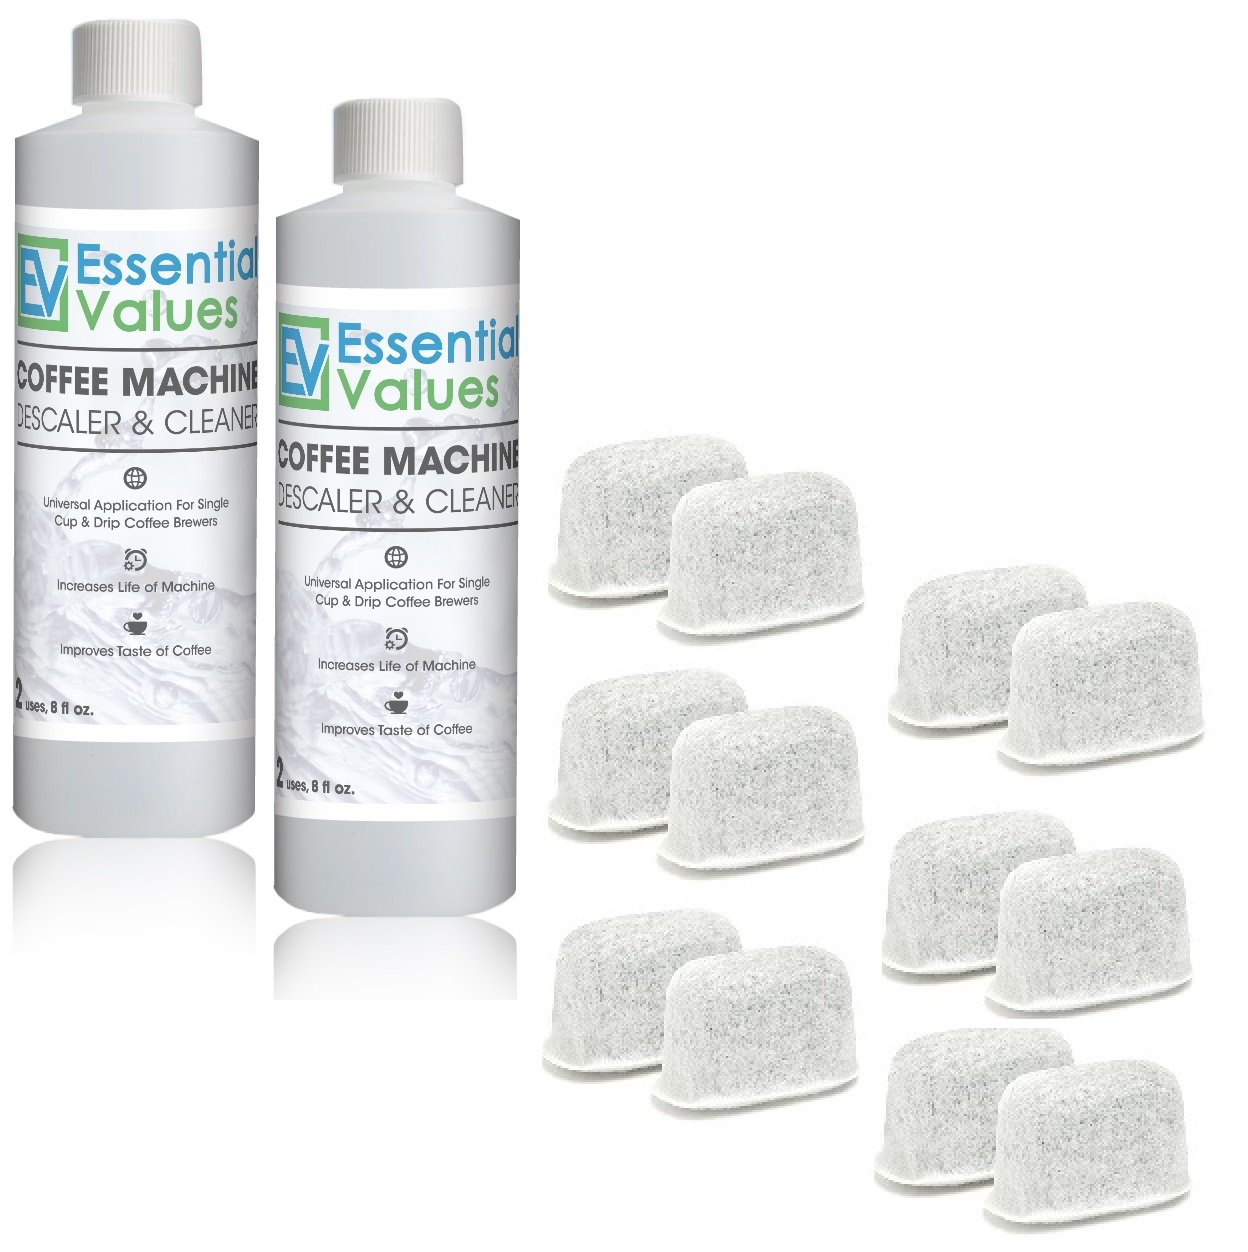 Essential Values Universal Descaling Solution (2 Pack, 4 Uses Total + 12 Fitlers), Designed For Keurig, Nespresso, Delonghi and All Single Use Coffee and Espresso Machines - Proudly Made In USA